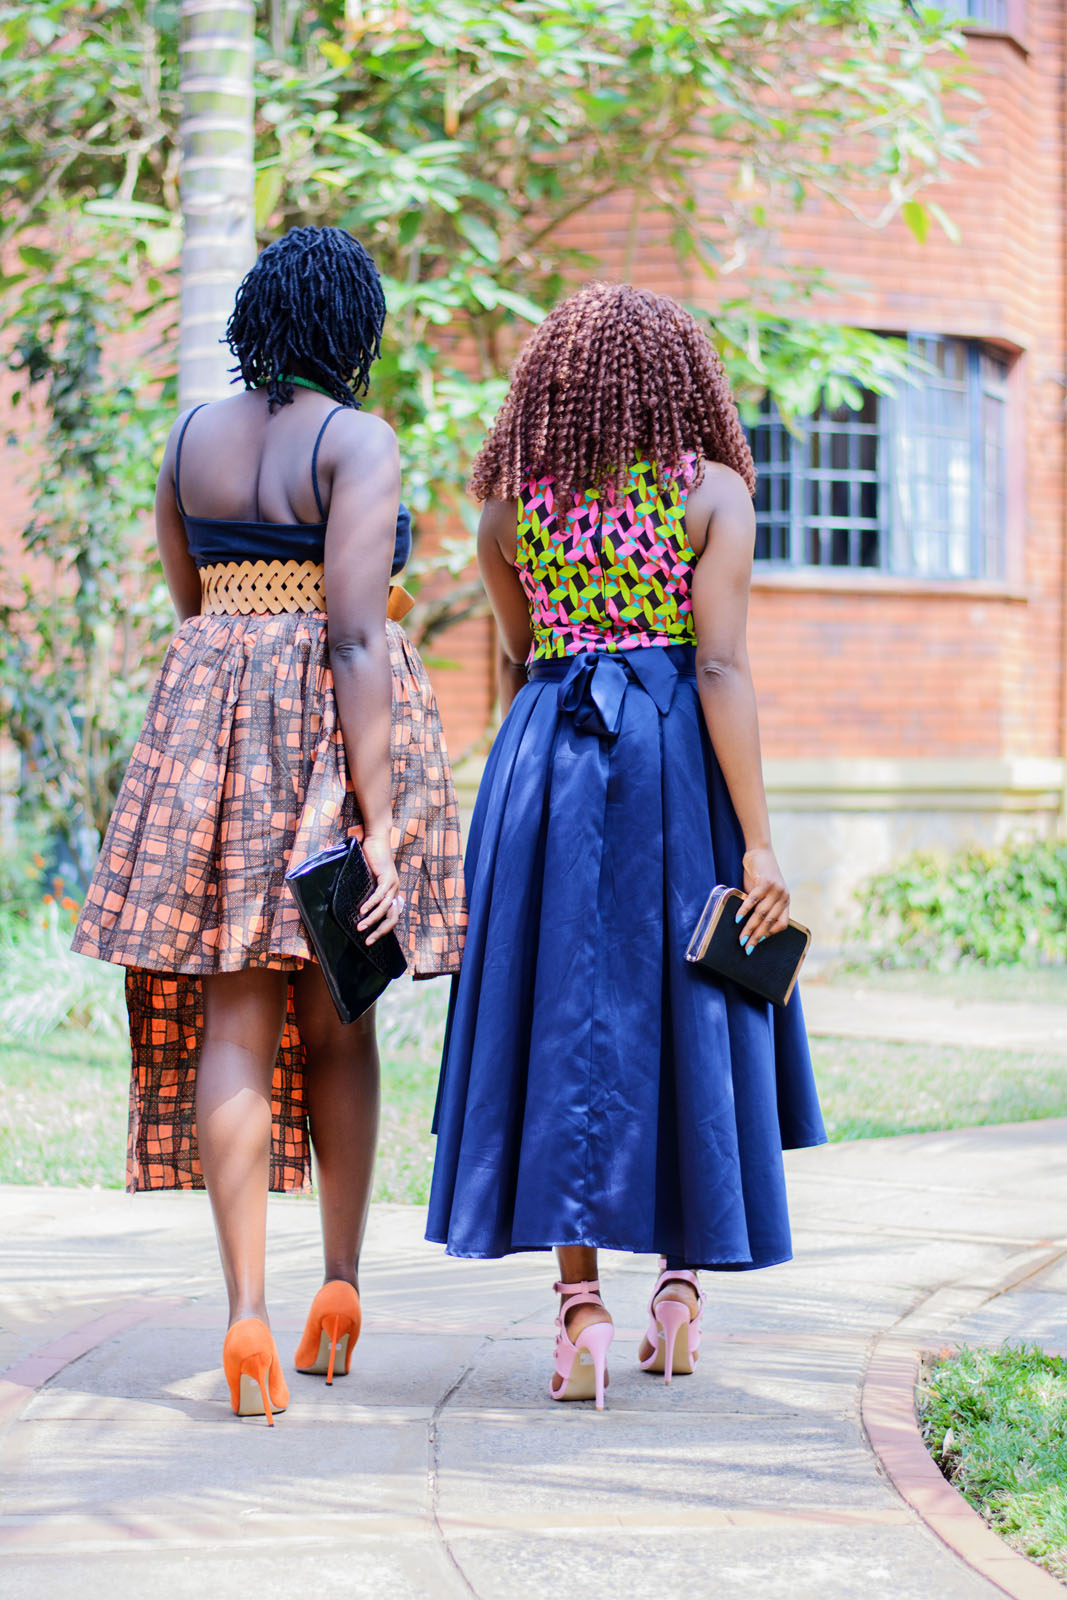 wanjiru-kariuki-church-fashion-2